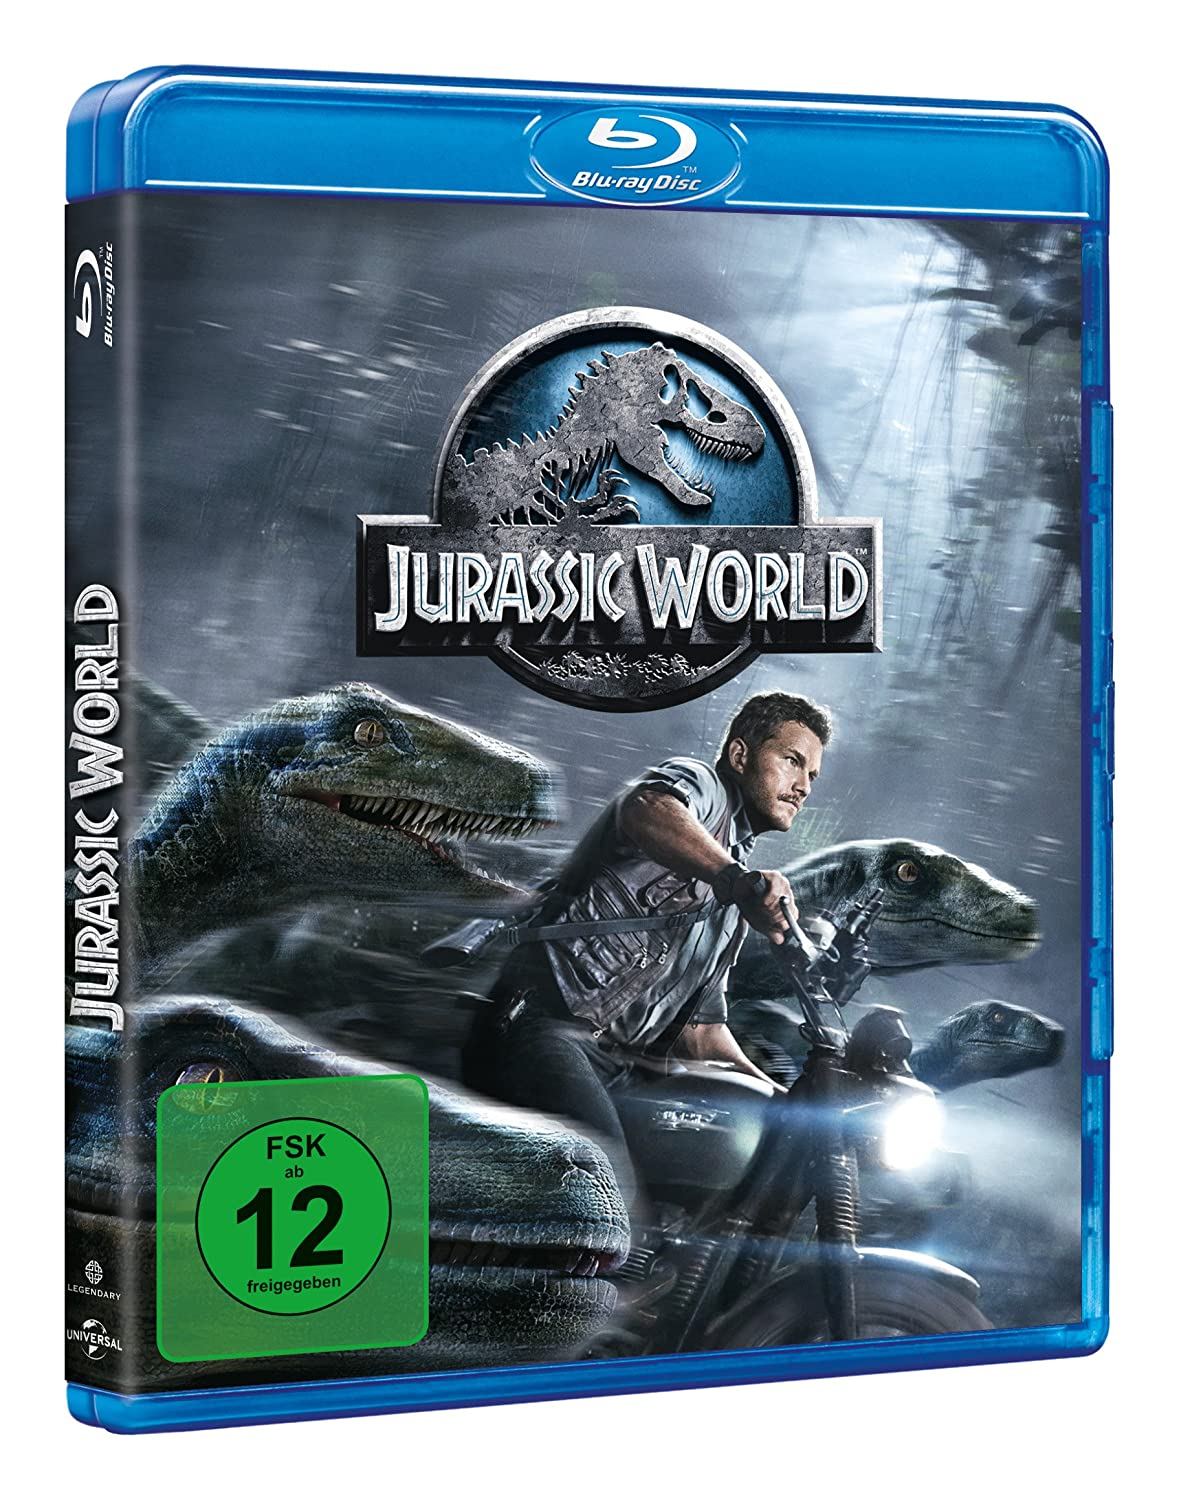 Jurassic World - Ultra HD Blu-ray [4k + Blu-ray Disc]